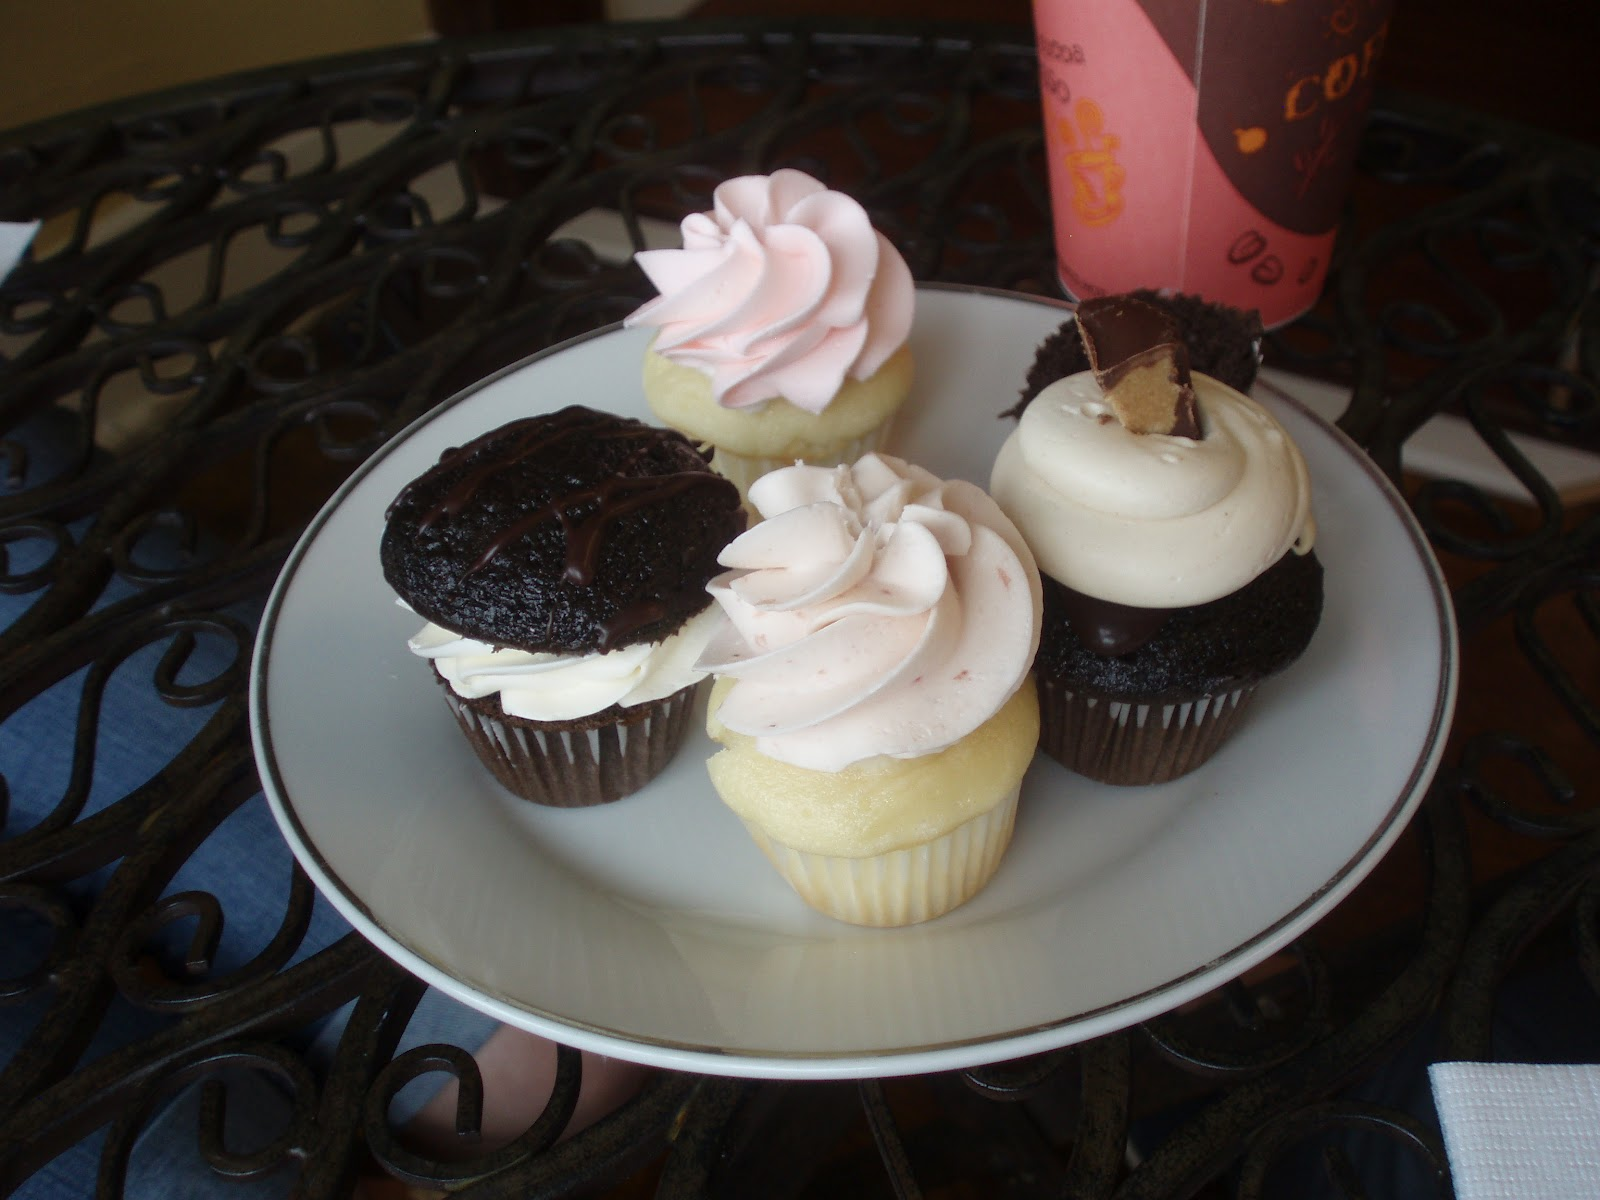 J.Diva: Scooters + History + Cupcakes= An Excellent Morning